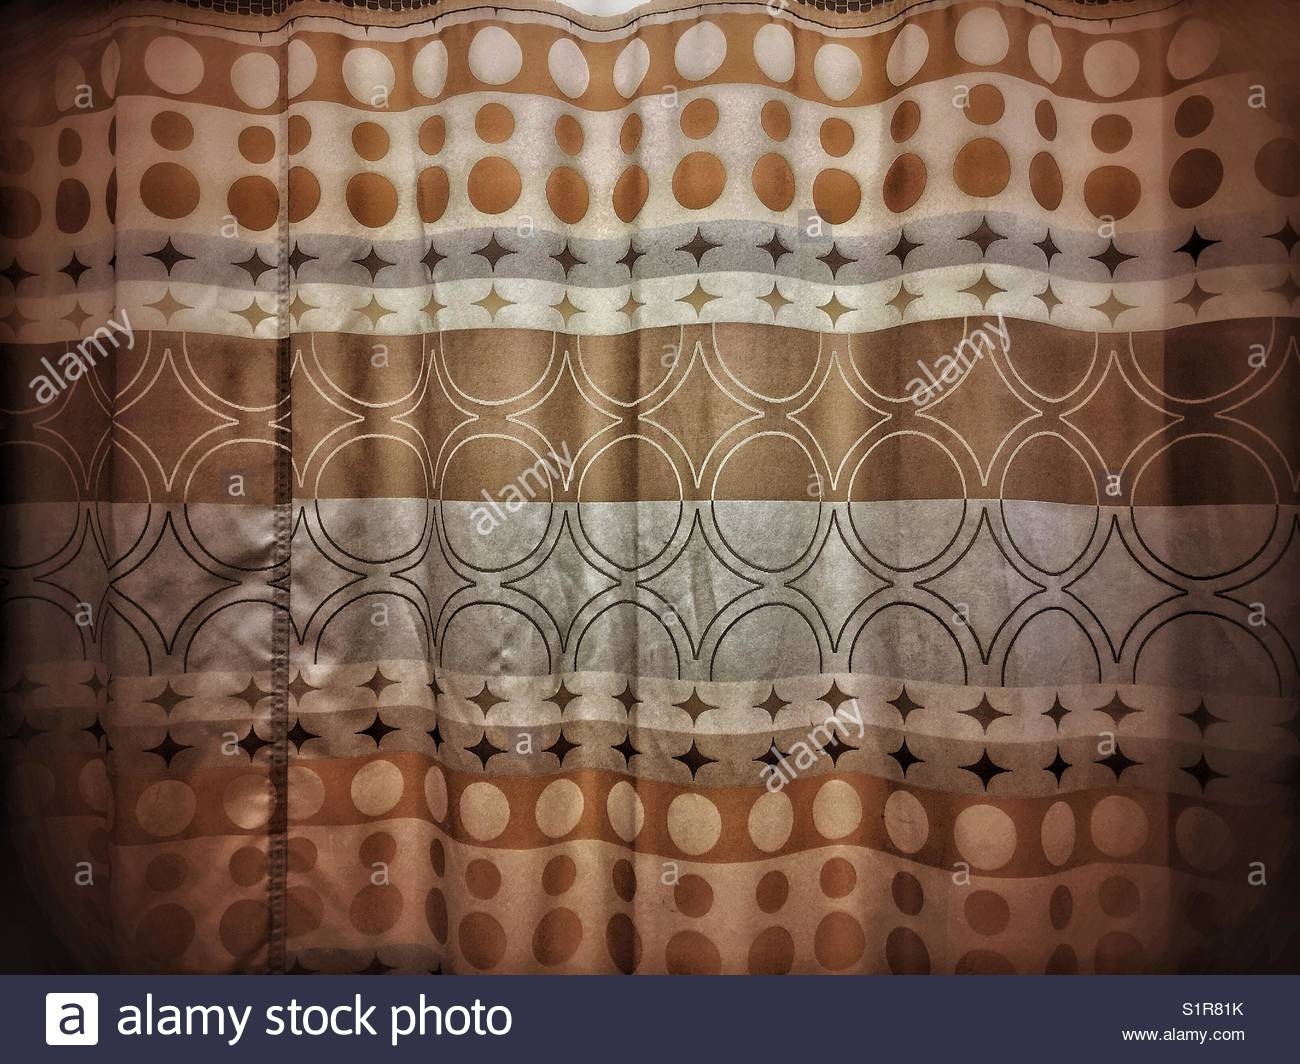 Kitschy curtains in a hospital waiting area - Stock Image